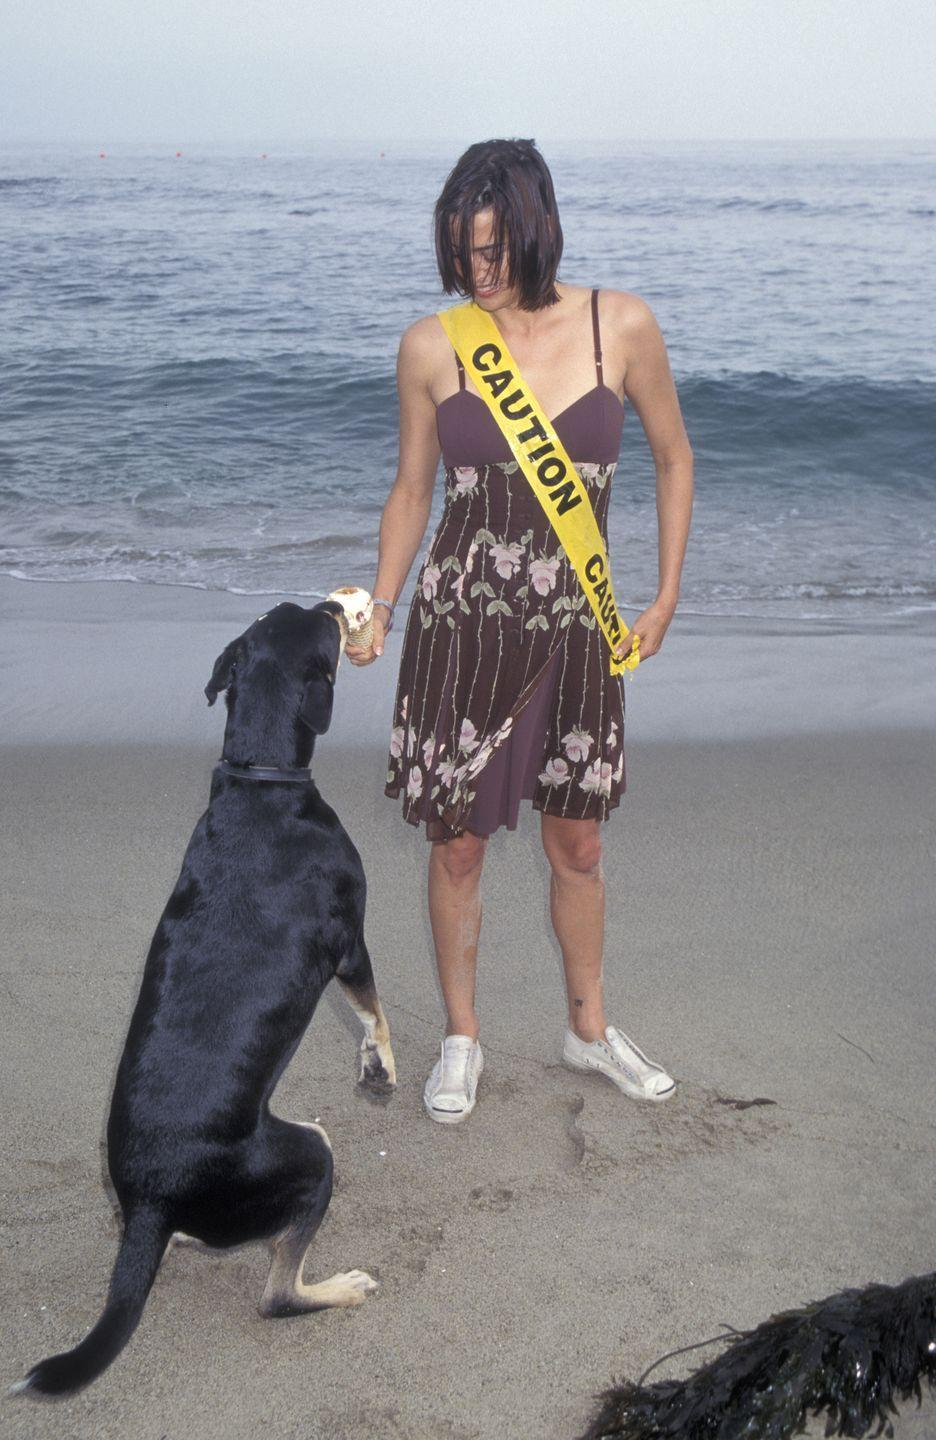 <p>Several pets were in attendance at the event, including Alicia Silverstone's pup, Sampson, but it's unclear whose dog Jennifer Rubin is feeding ice cream to here. Also unclear: where she got that caution tape sash. </p>